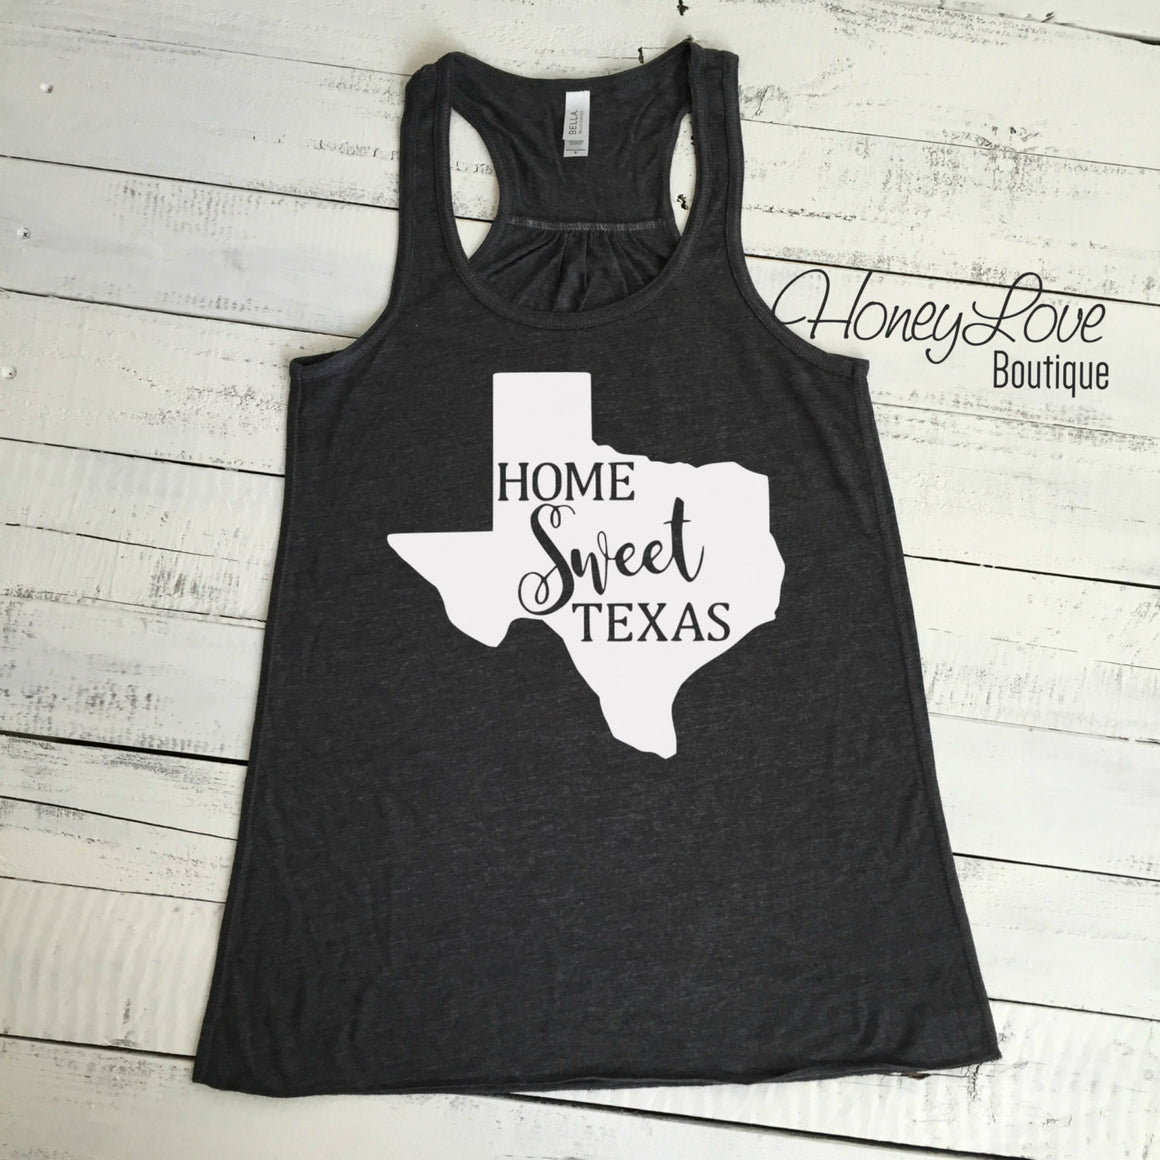 Home Sweet Texas flowy tank